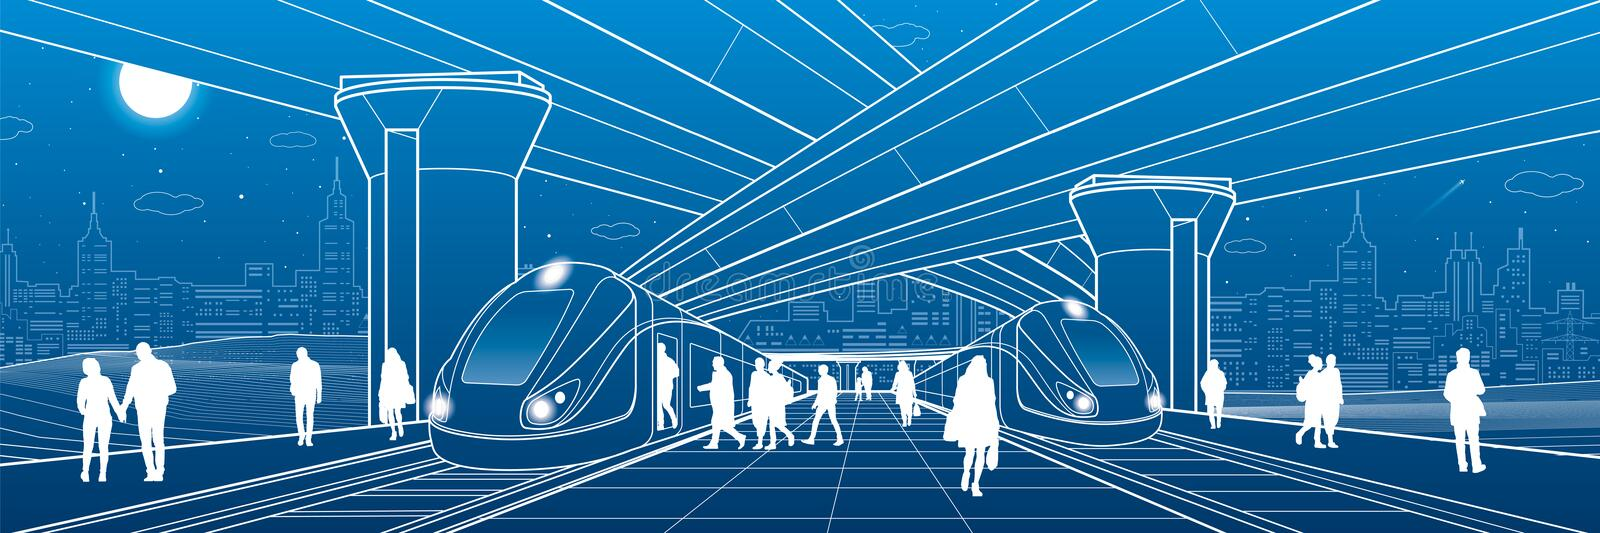 Railway station under the overpass. Passengers board the train. Urban life scene. City Transport infrastructure. Vector design out. Line illustration stock illustration